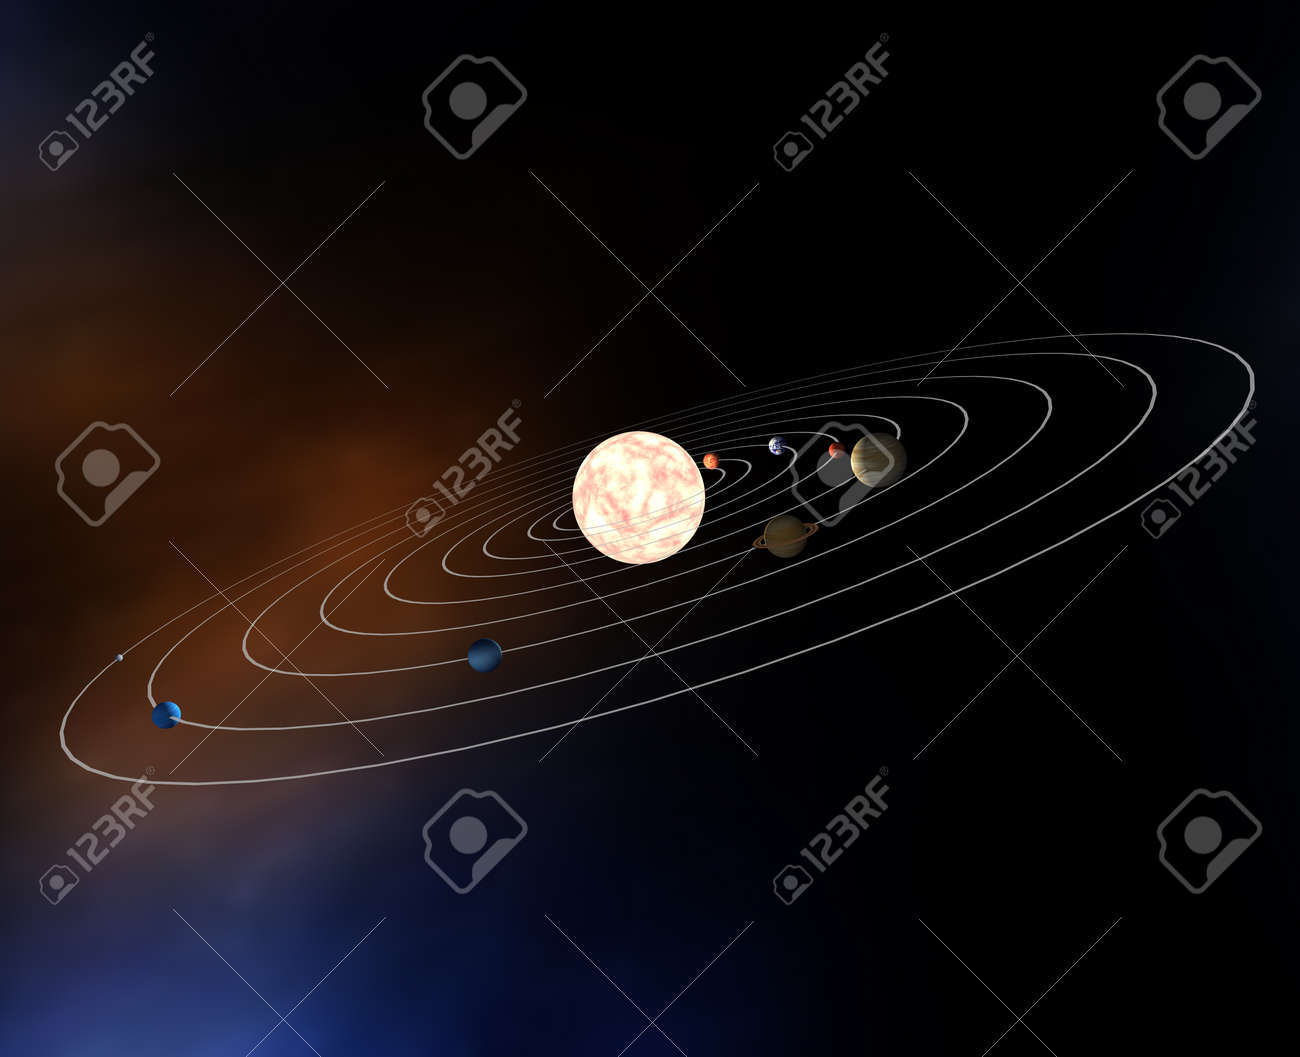 Amazing Bulldogsecurity.com Wiring Tall Gibson 3 Way Switch Solid 5 Way Switch Diagram 1 Humbucker 1 Volume Youthful Bulldog Vehicle GreenHow To Install Remote Start Alarm Diagram Of The Planets In The Solar System Stock Photo, Picture ..